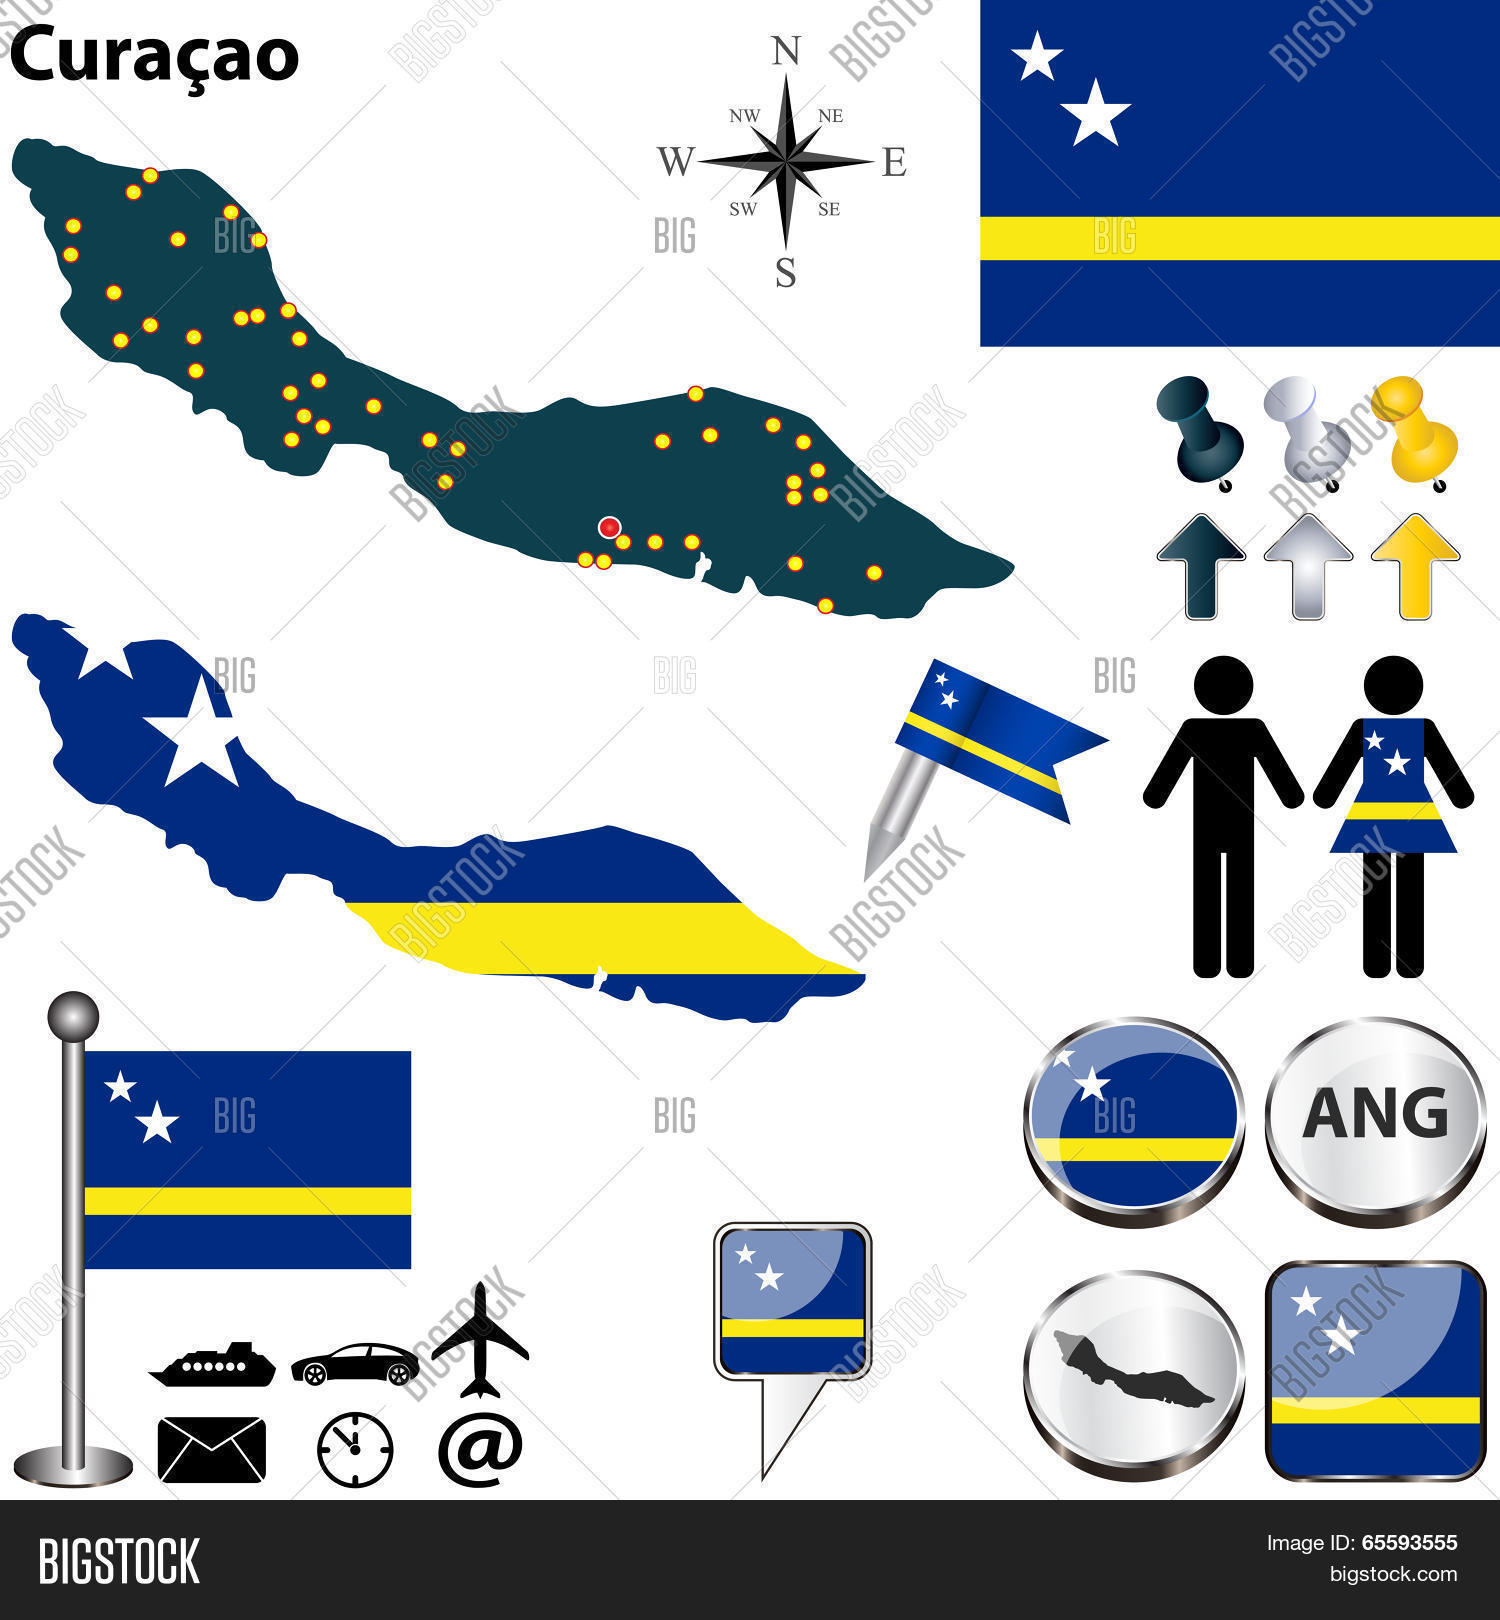 Map Curacao Vector & Photo (Free Trial) | Bigstock on faroe islands map, hato international airport, barbados map, saint martin, aruba map, netherlands antillean gulden, jair jurrjens, costa rica map, papiamento language, bonaire map, puerto rico map, venezuela map, st maarten map, caicos map, bahamas map, saint kitts and nevis, libya map, panama map, martinique map, antigua map, saint vincent and the grenadines, suriname map, caribbean map, taiwan map, sint eustatius, guam map, trinidad map, bahrain map,